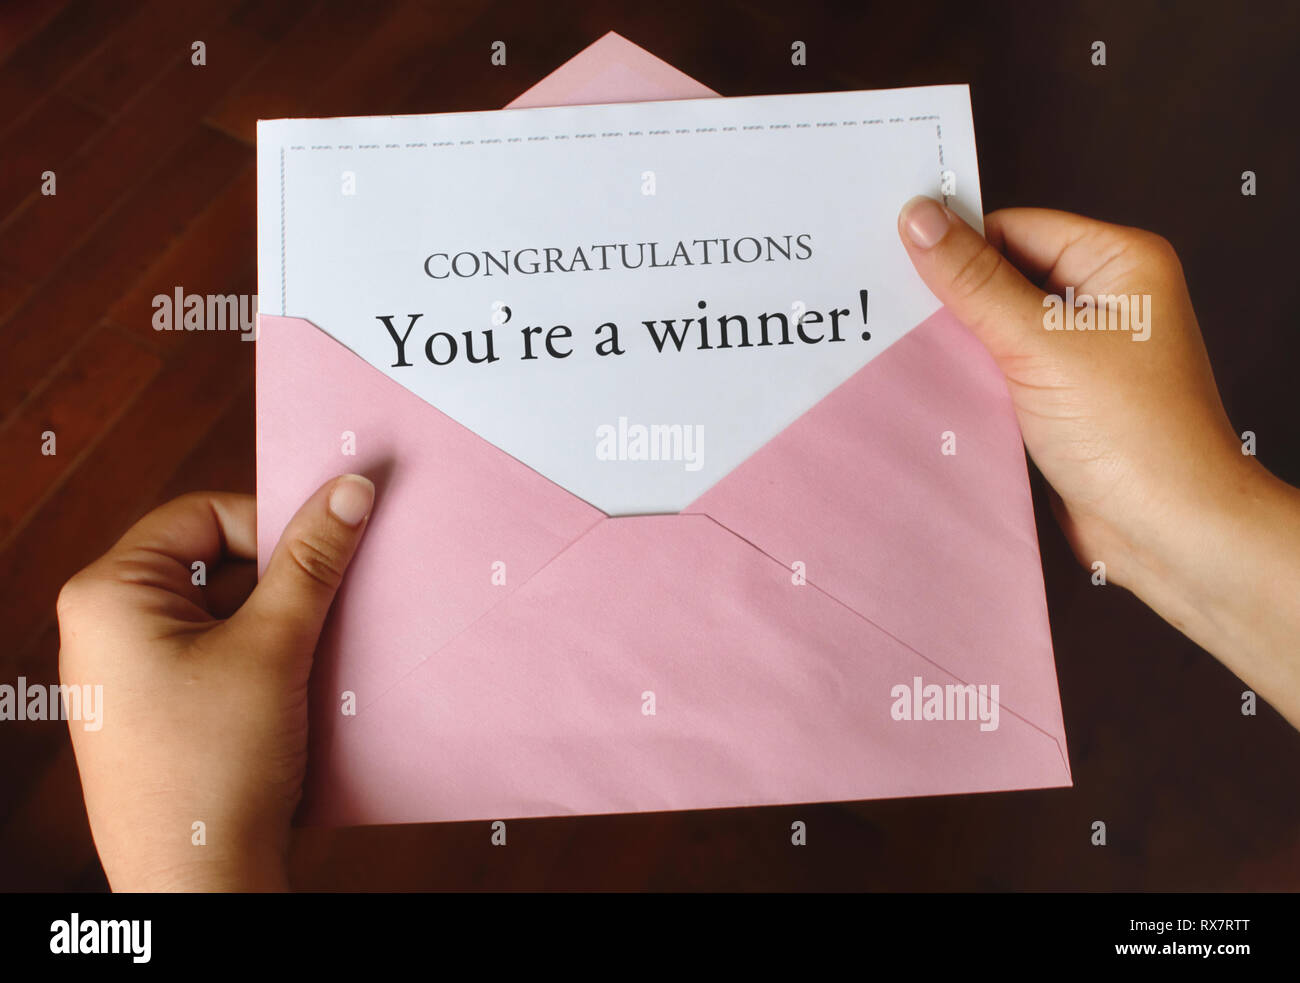 A letter that says Congratulations You're a winner! with female hands holding the open pink envelope - Stock Image